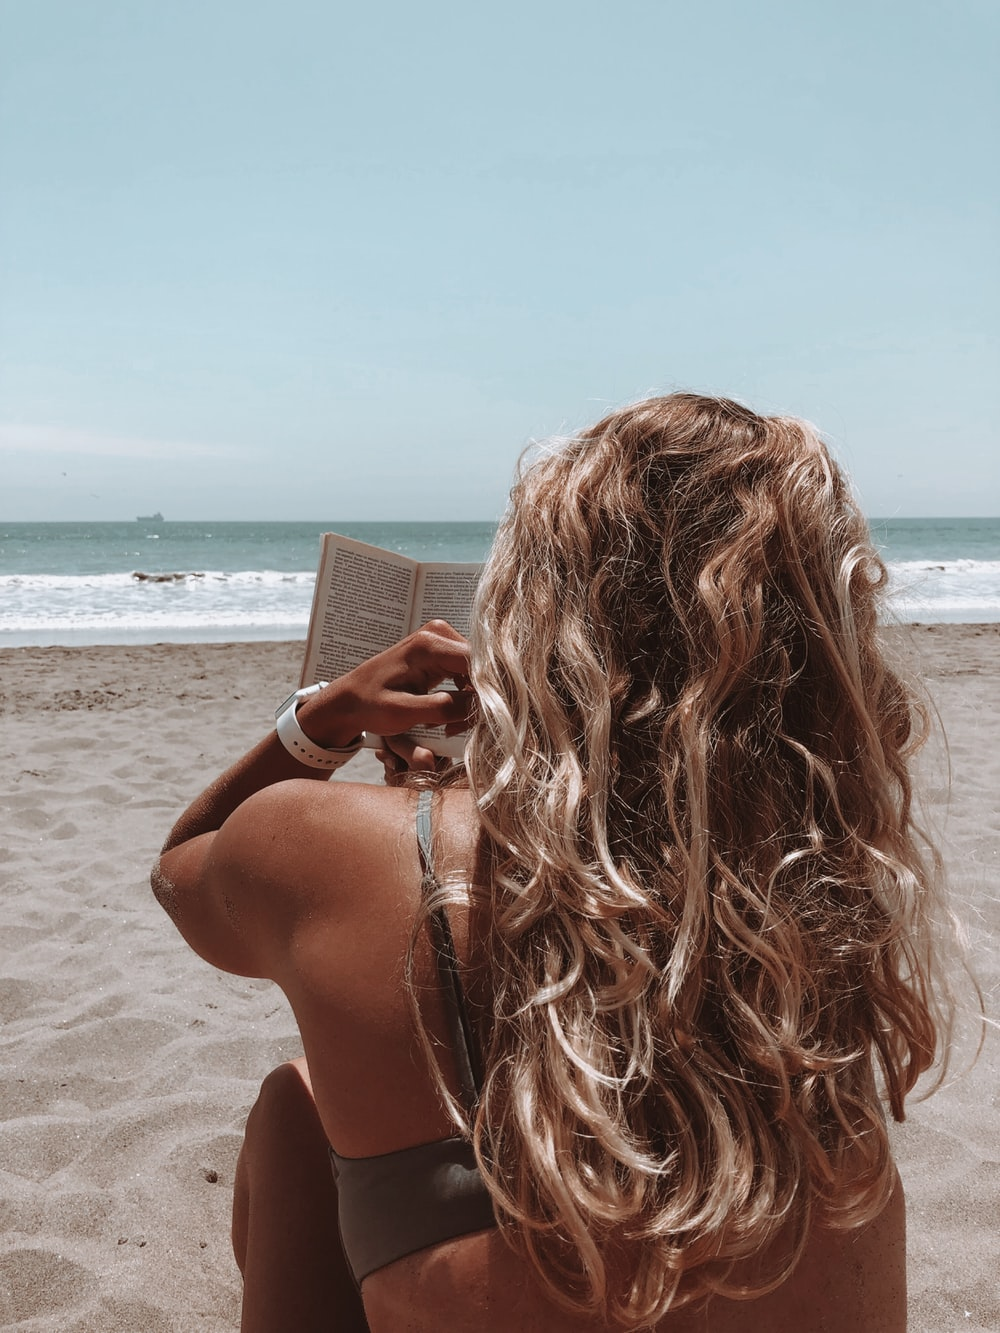 woman in brown bikini holding book